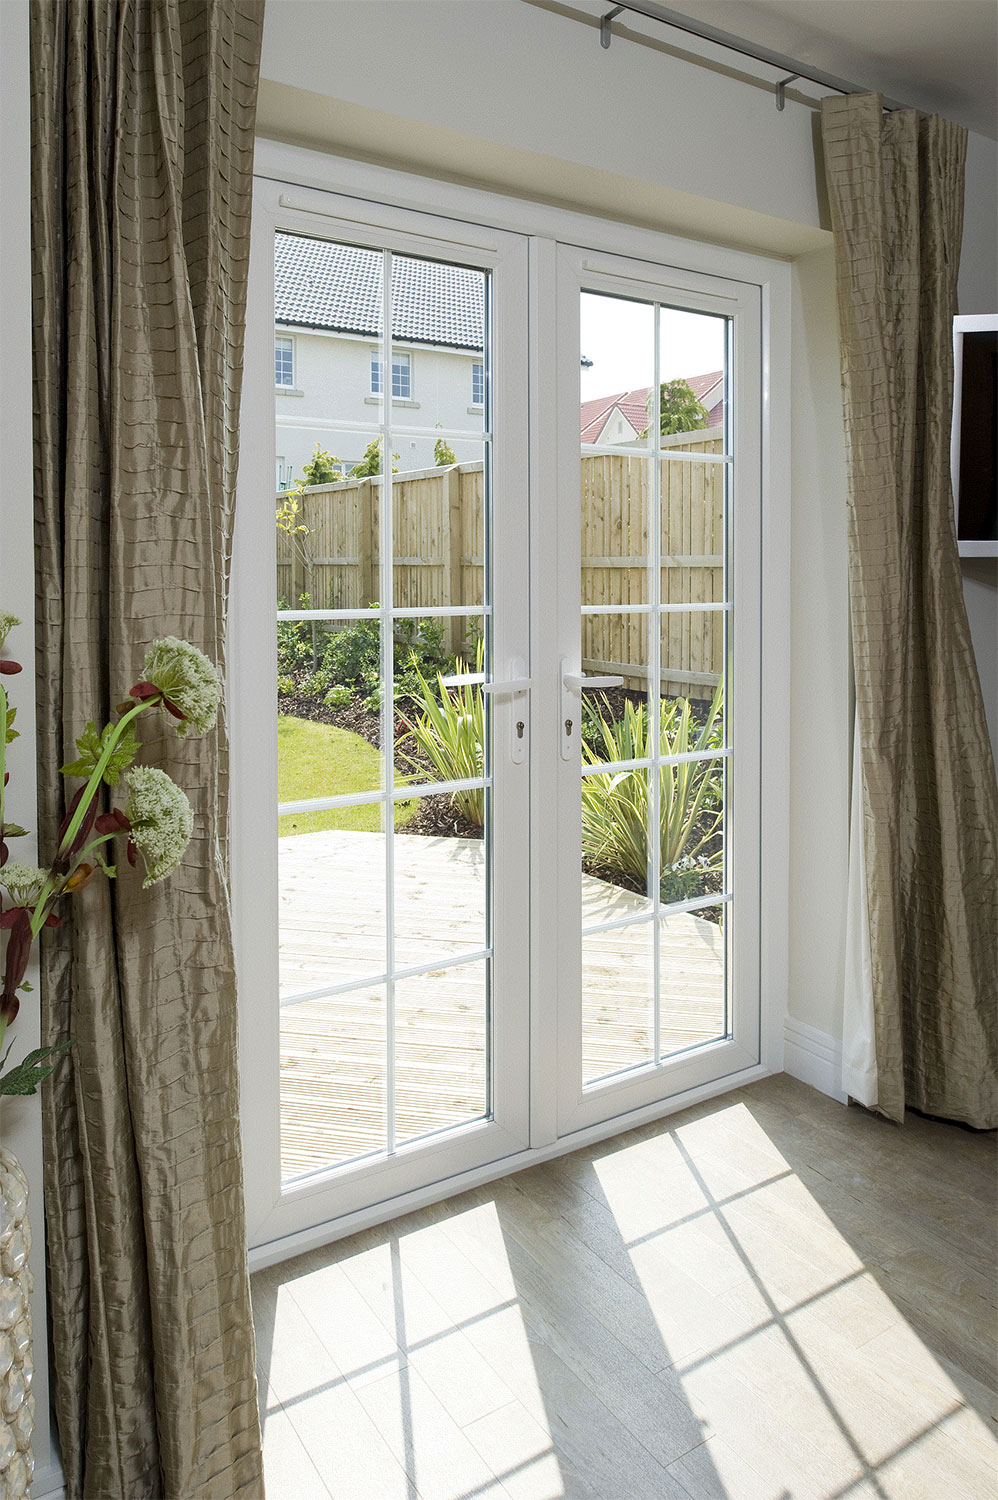 French doors windowmate upvc home improvements for Upvc french doors with letterbox